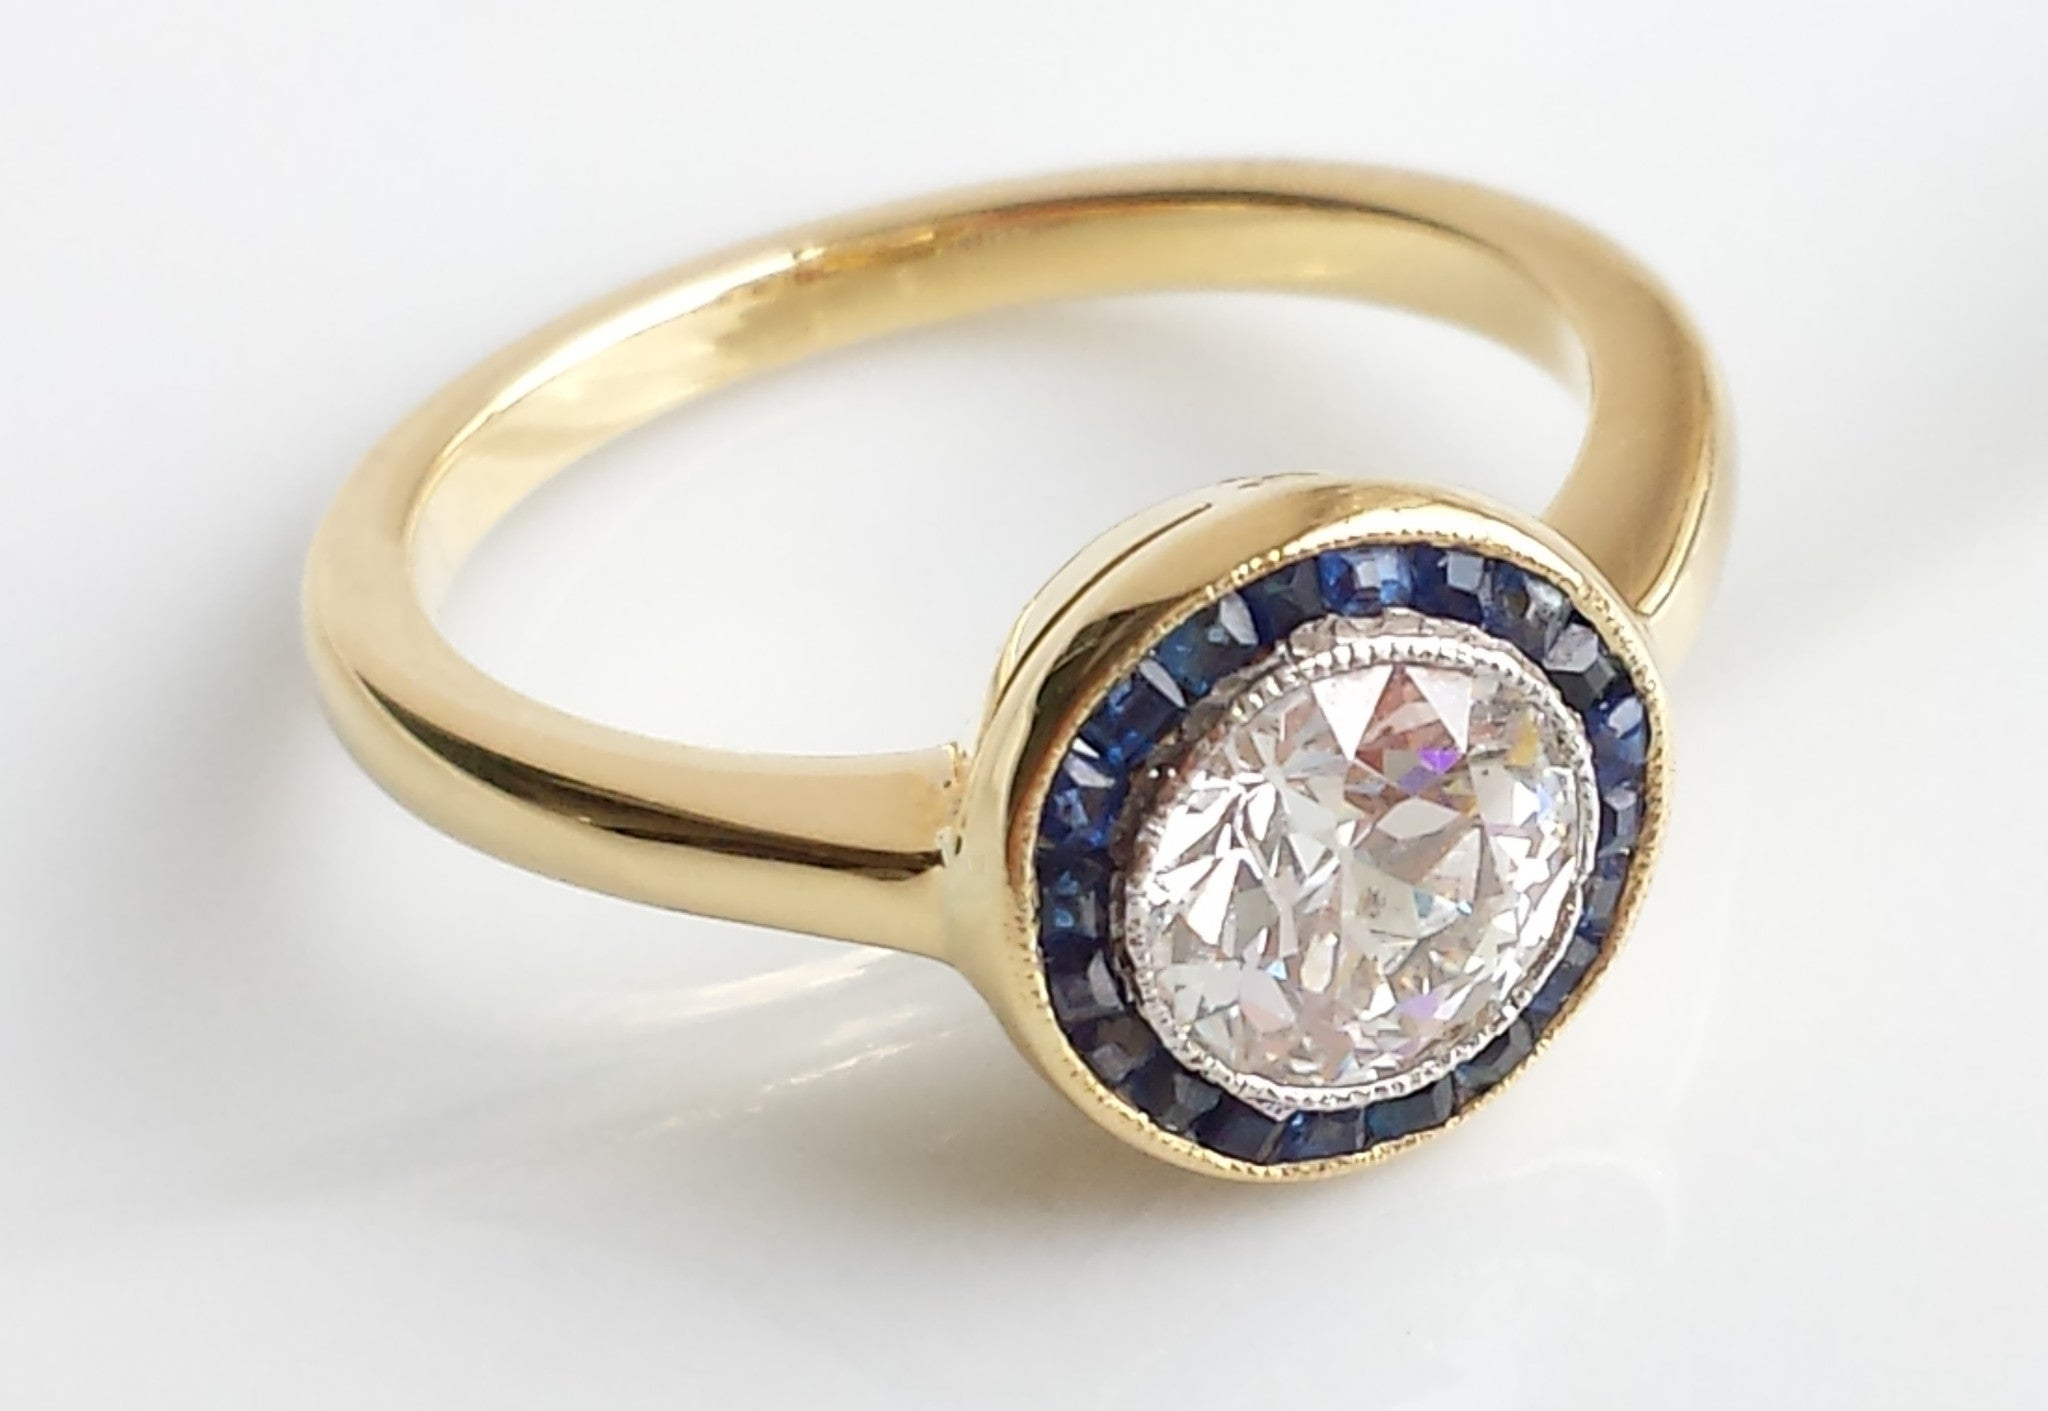 art deco halo target diamond sapphire engagement ring in 18k yellow gold - Target Wedding Rings